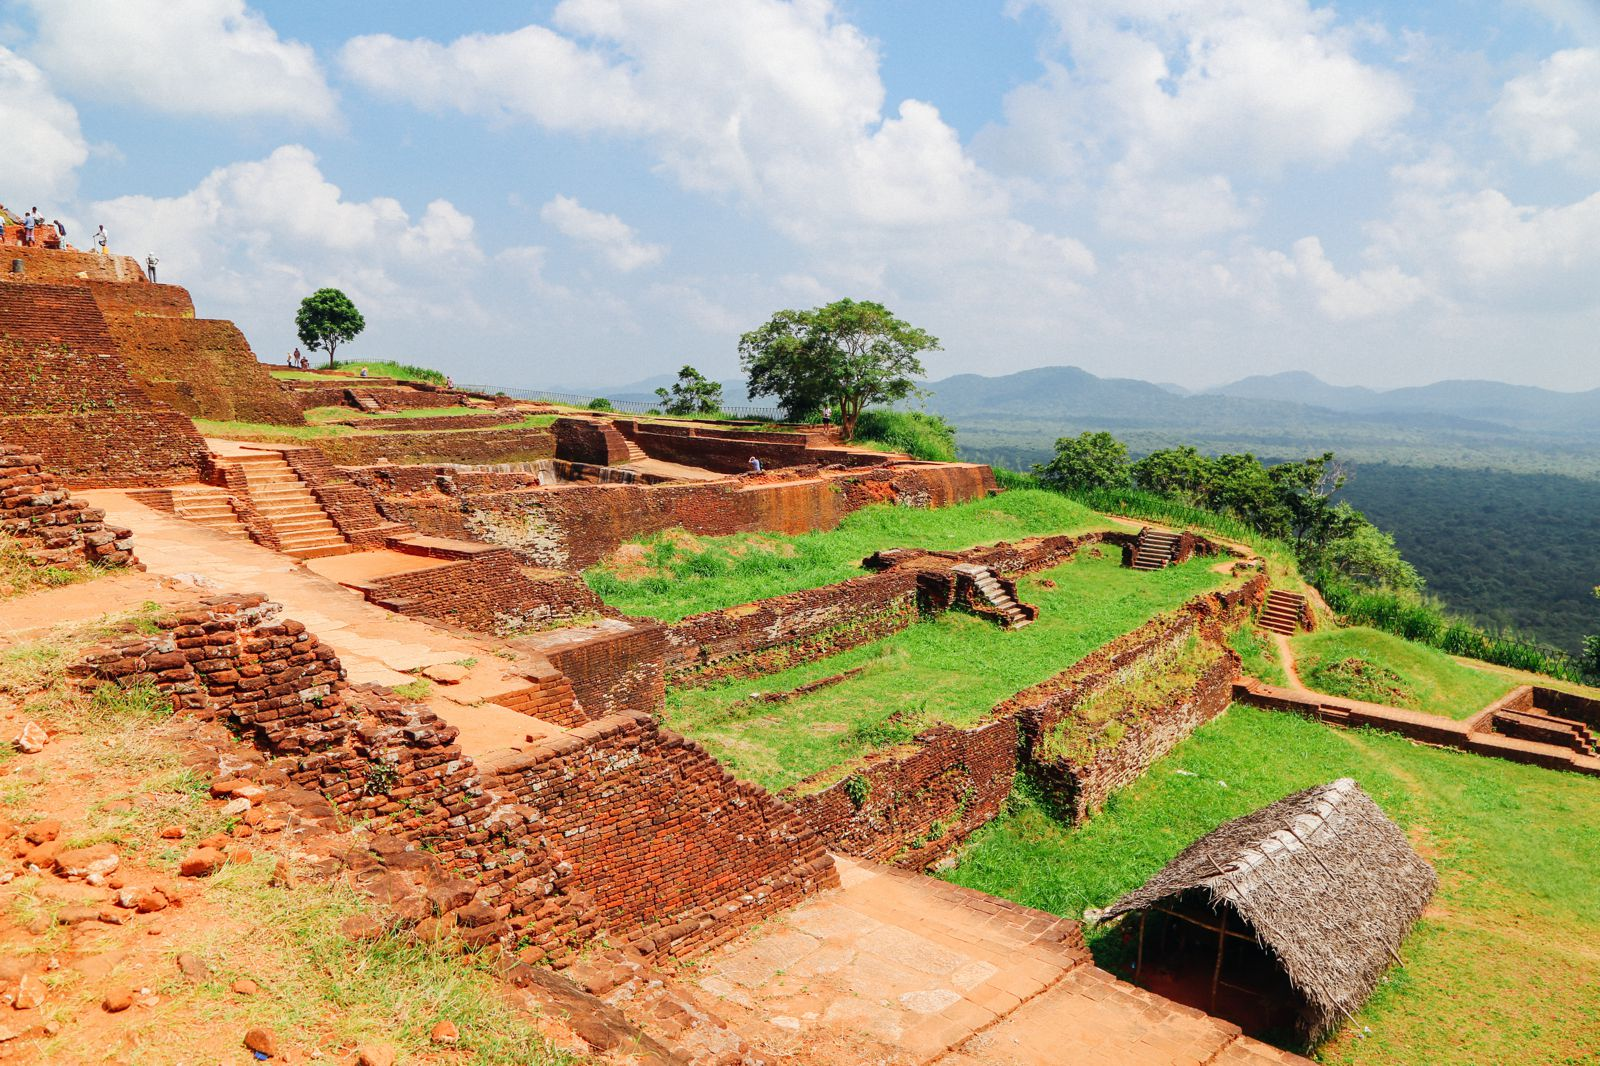 The Complete Guide To Climbing Sri Lanka's UNESCO World Heritage Site Of Sigiriya - Lion Rock (54)